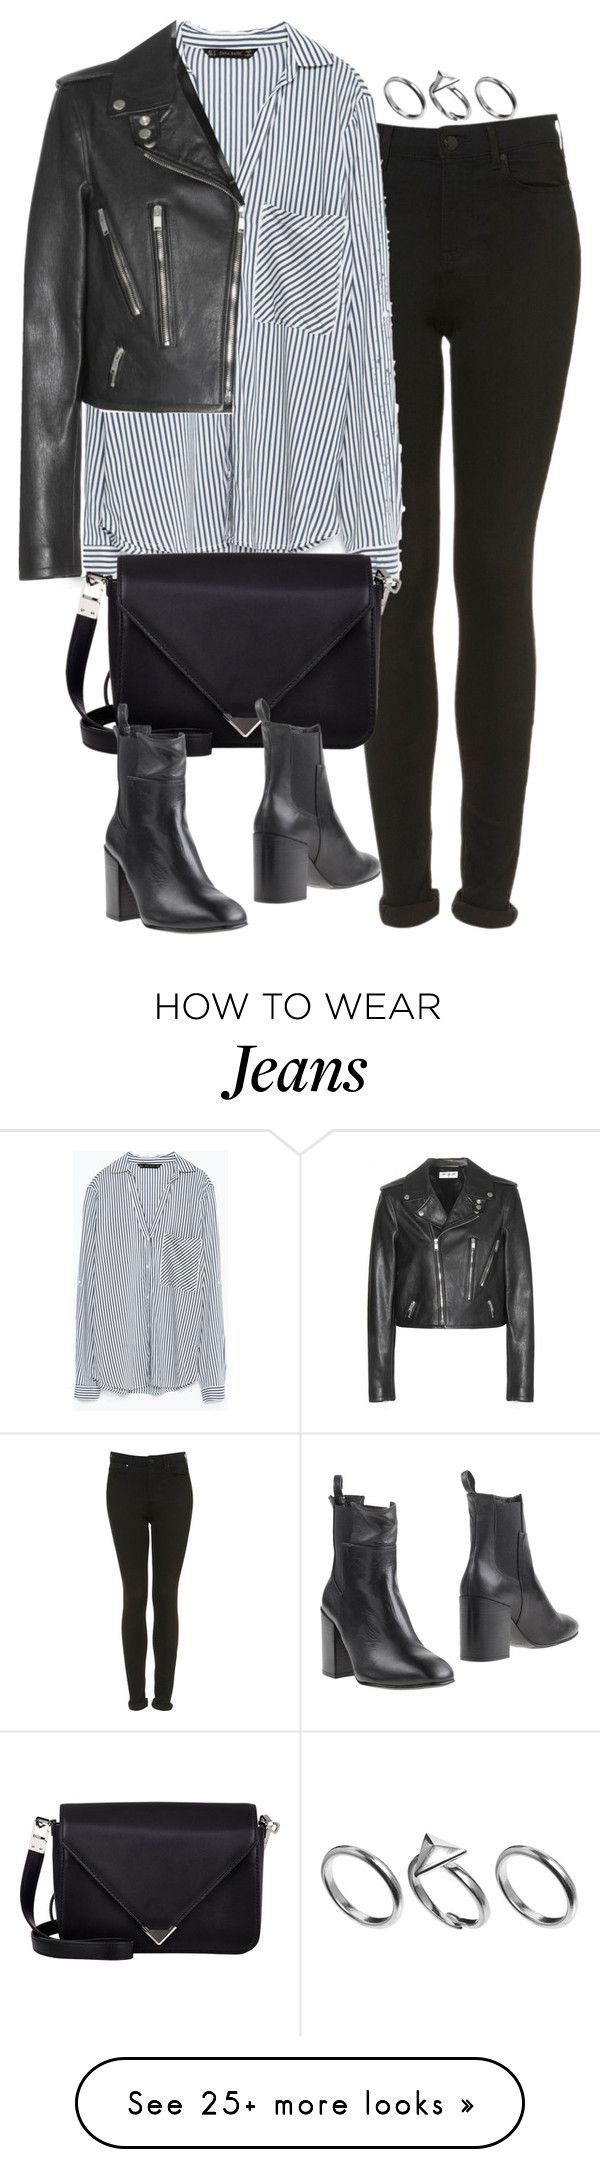 """Untitled #4906"" by eleanorsclosettt on Polyvore featuring Topshop, Zara, Yves Saint Laurent, Alexander Wang, Eqüitare and Pilgrim"